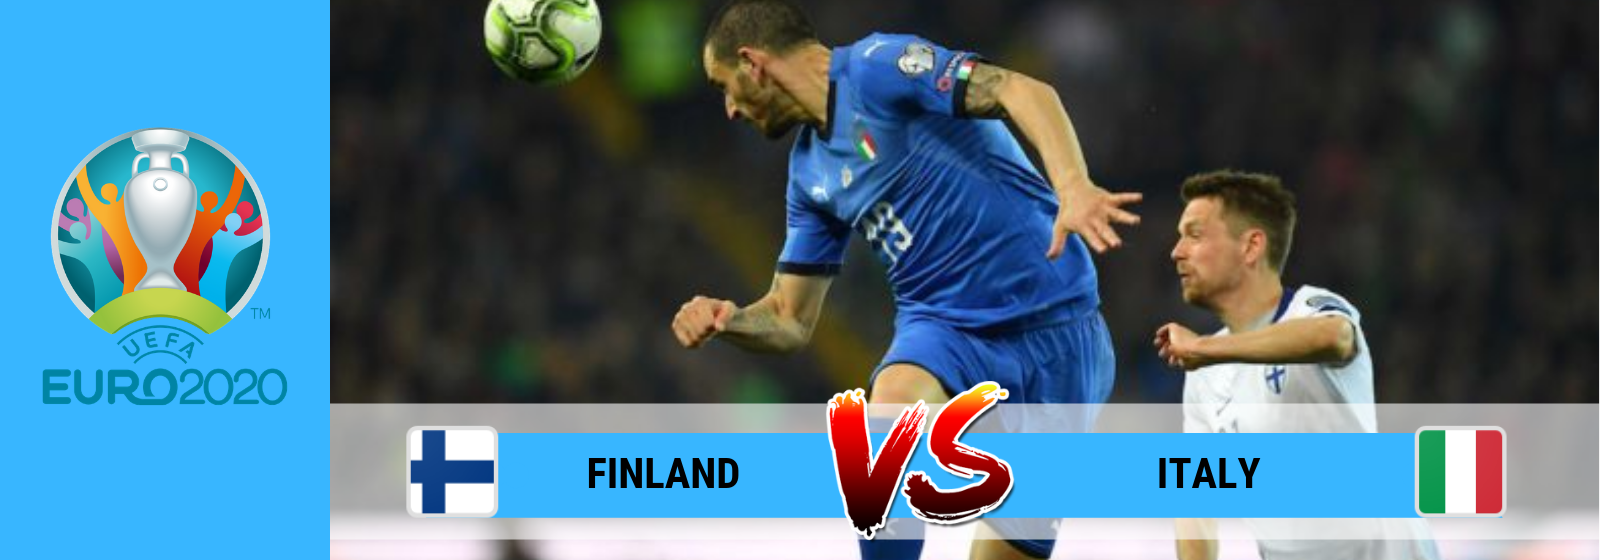 Euro 2020 Finland Vs. Italy Asian Connect